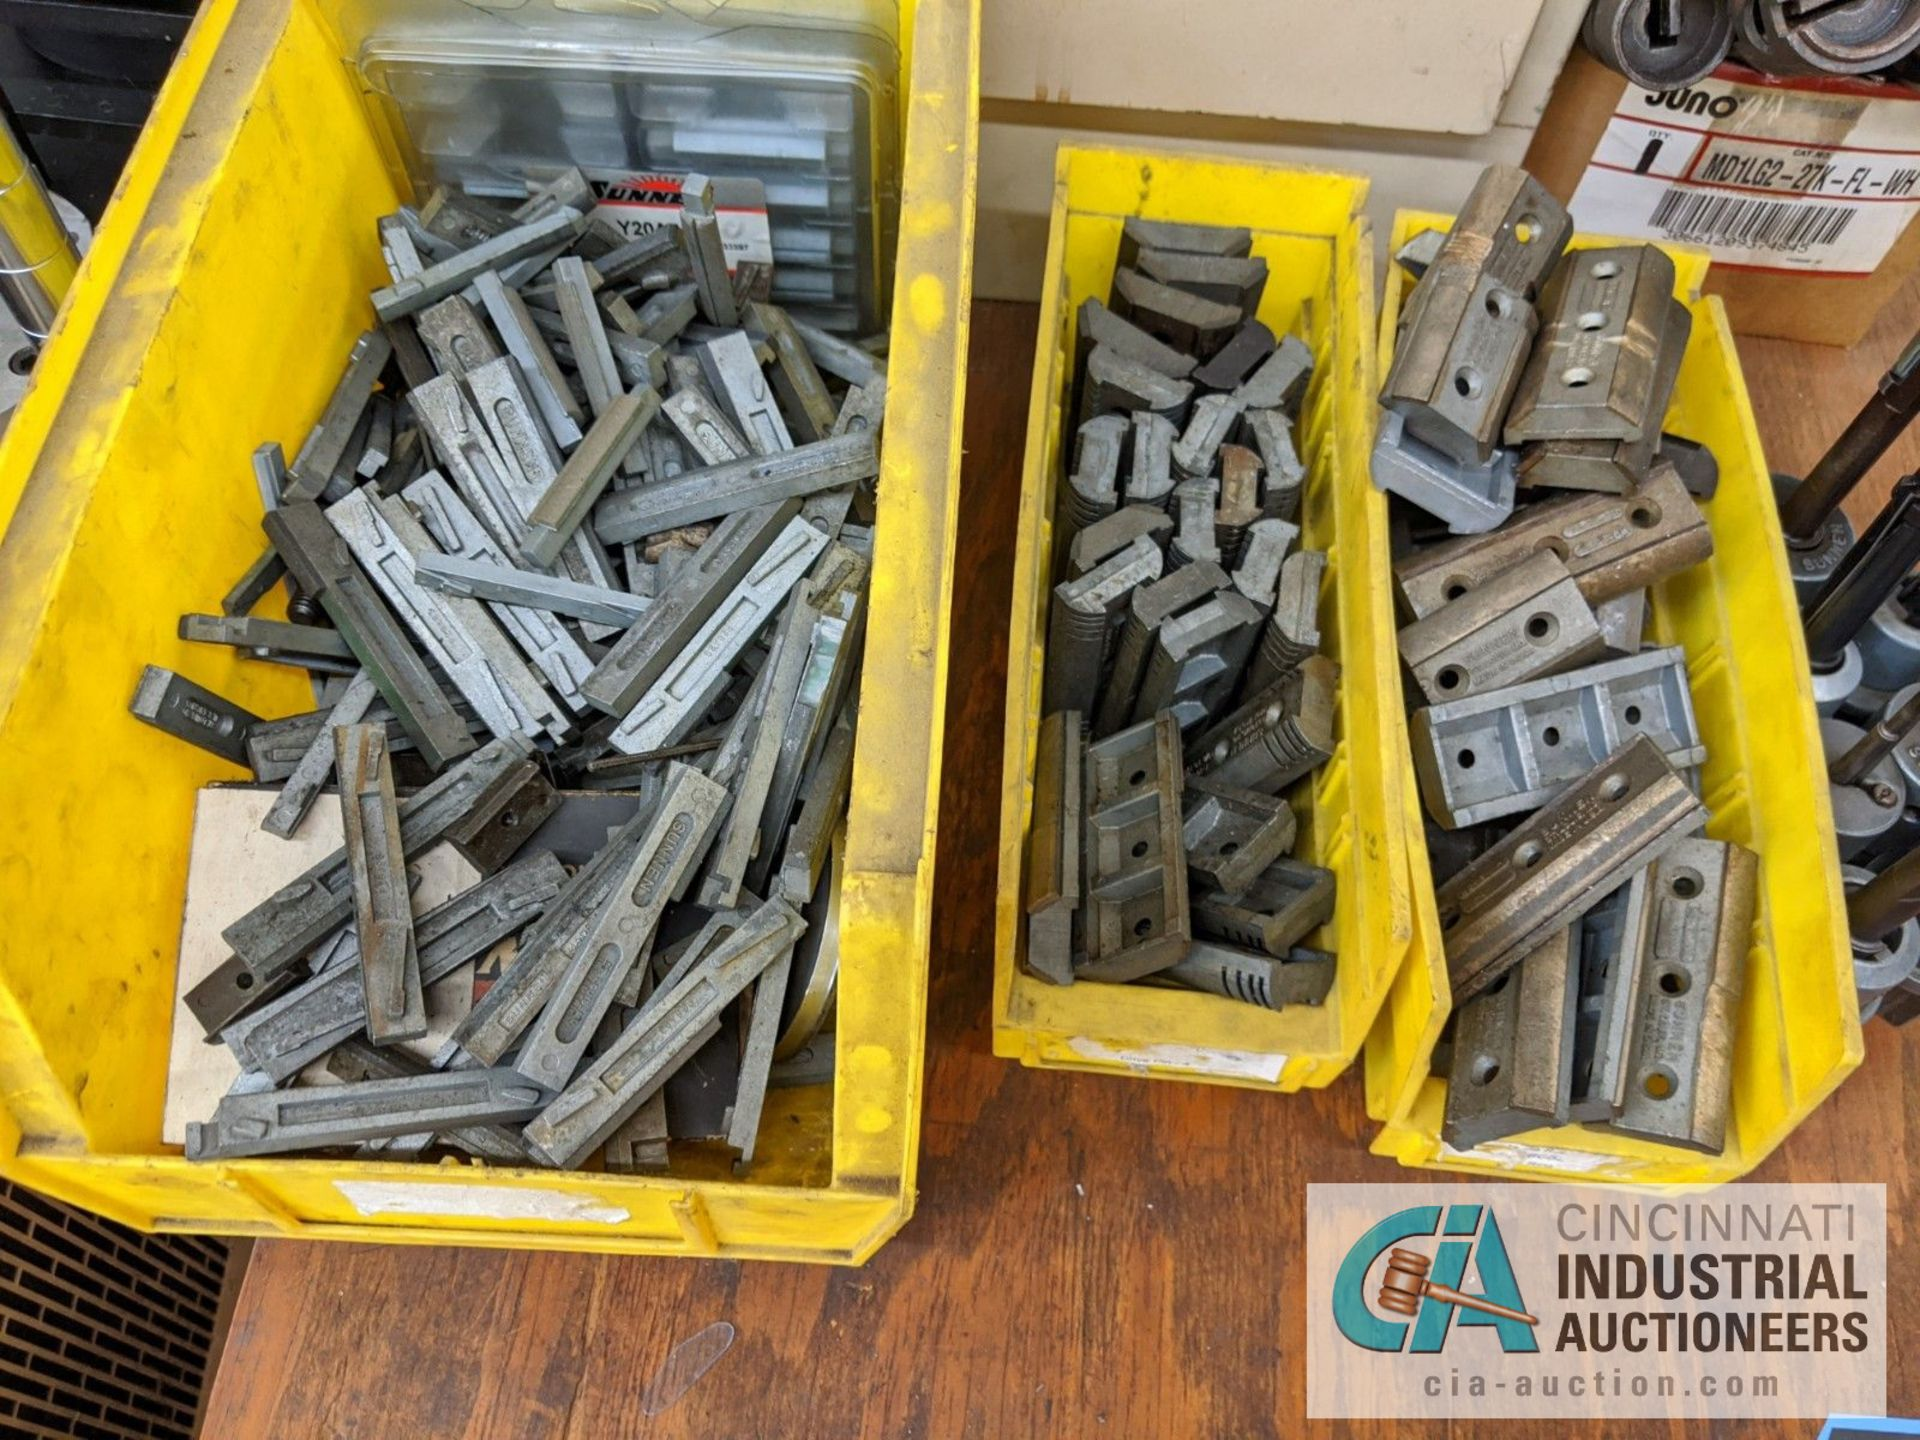 (LOT) ASSORTED HONE TOOLING IN TOTES AND CABINET WIHT BENCH - Image 2 of 4